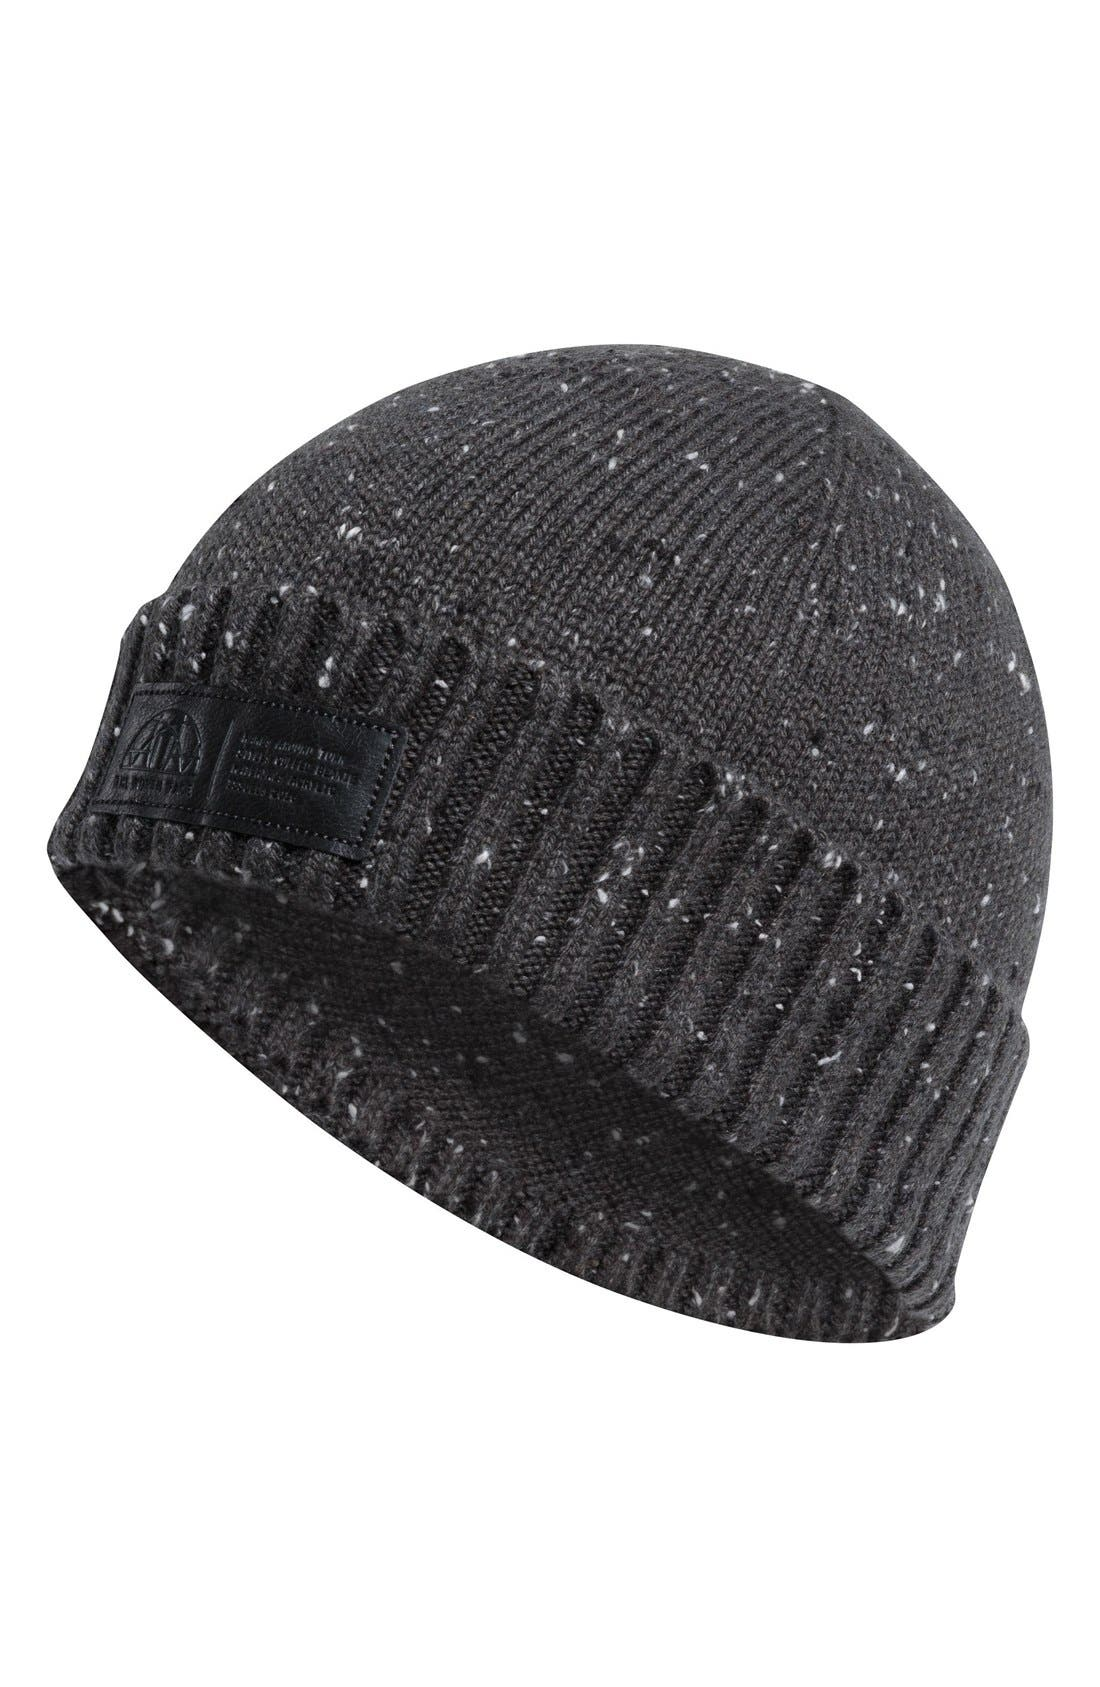 Around Town Beanie,                         Main,                         color, Asphalt Grey